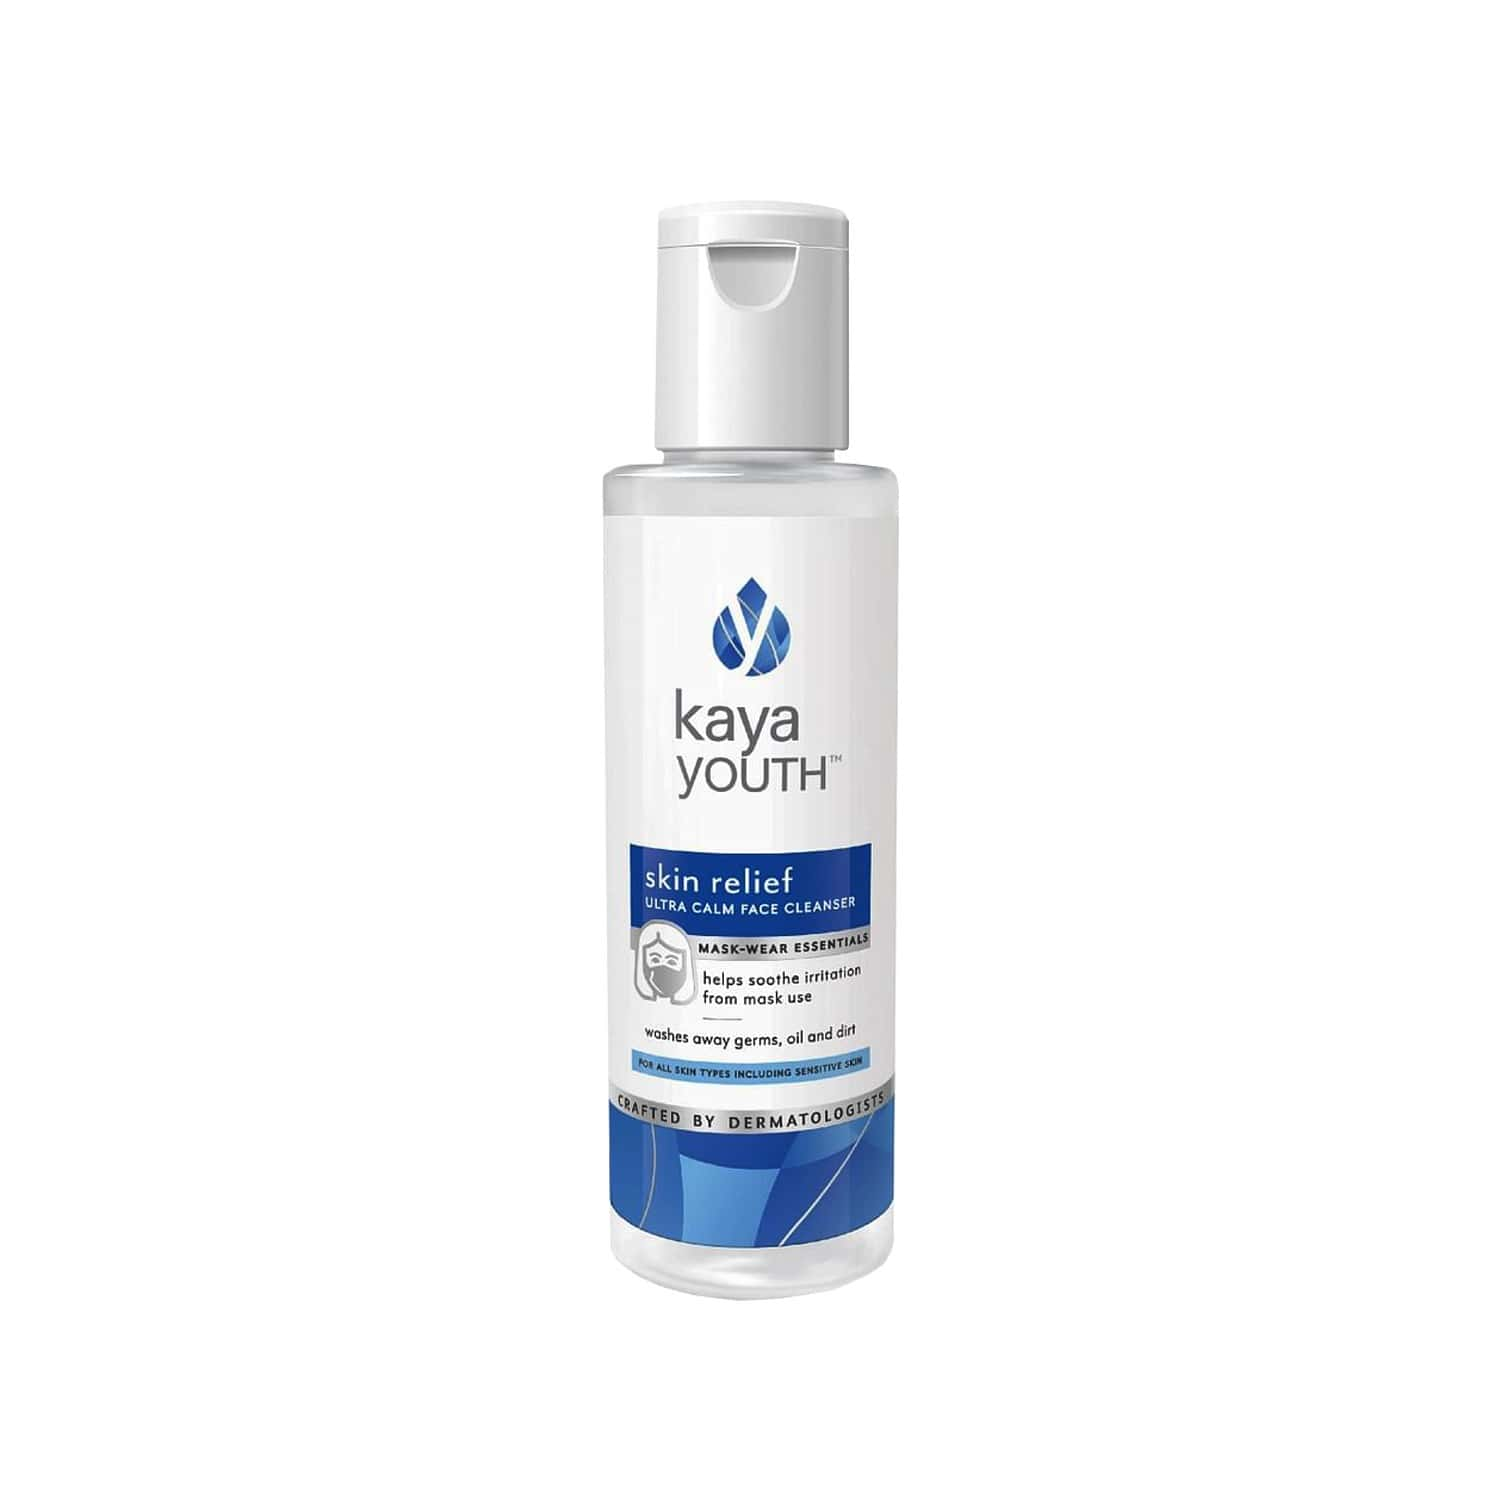 Kaya Youth Skin Relief Ultra Calm Face Cleanser-soothes Irritation From Face Masks - 95 Ml